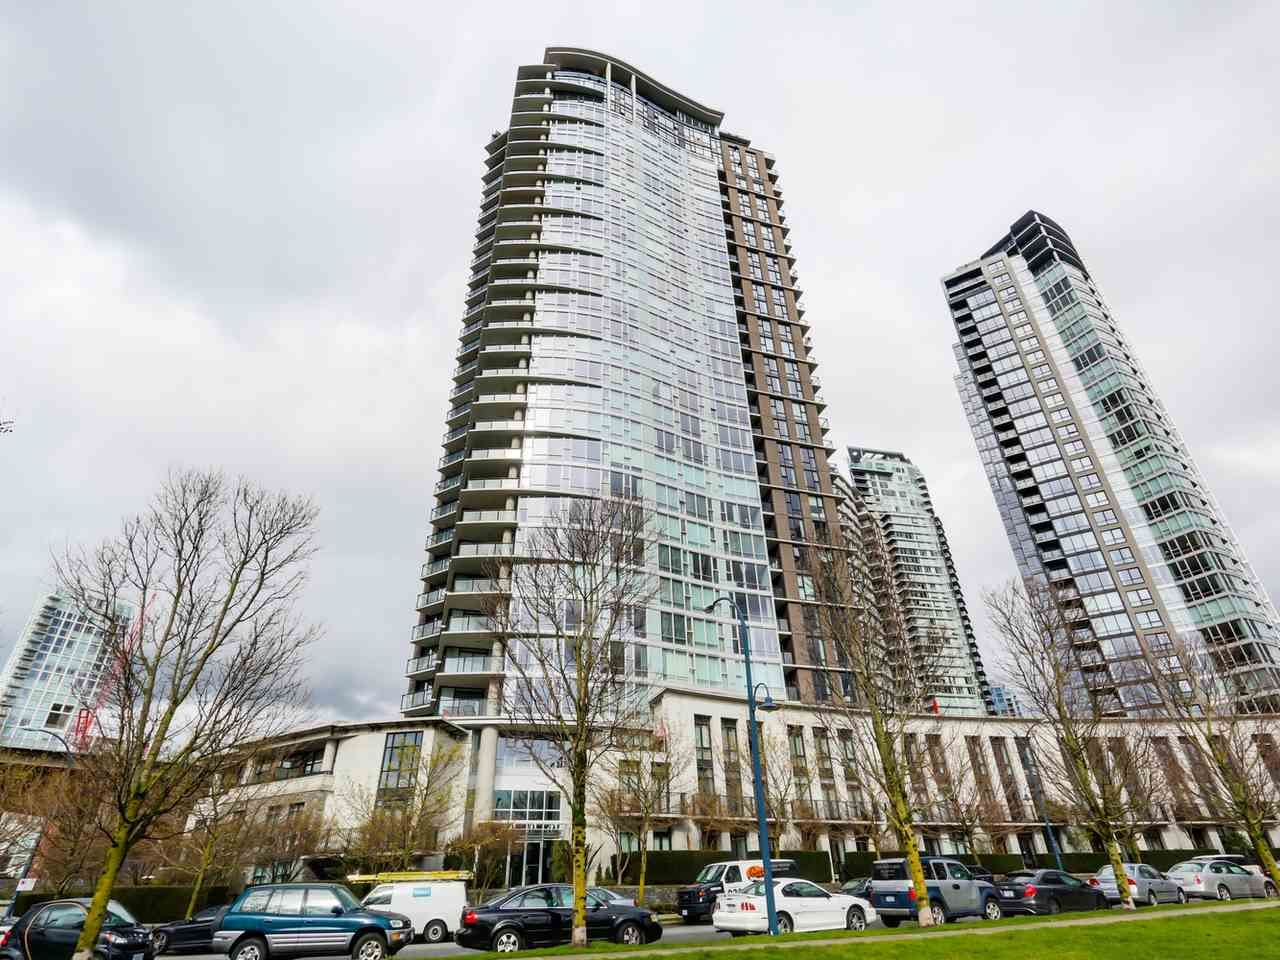 Main Photo: 3002 583 BEACH CRESCENT in Vancouver: Yaletown Condo for sale (Vancouver West)  : MLS®# R2043293